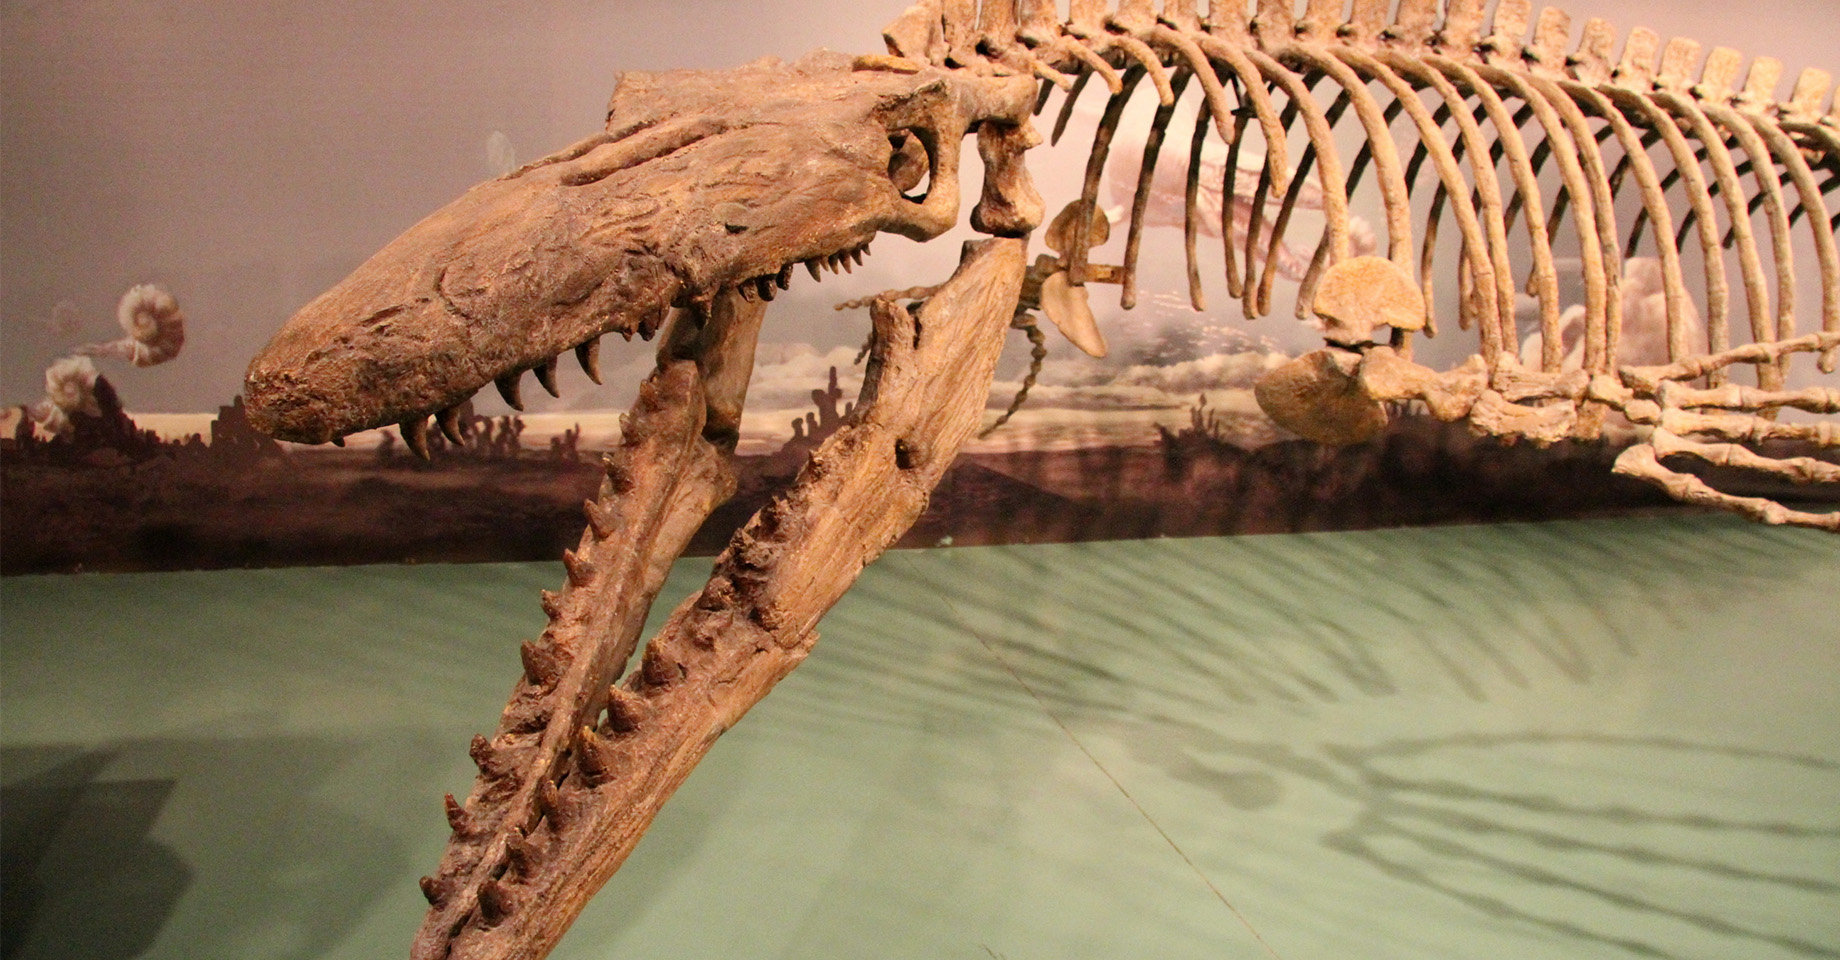 A fossil display of a large amphibious dinosaur